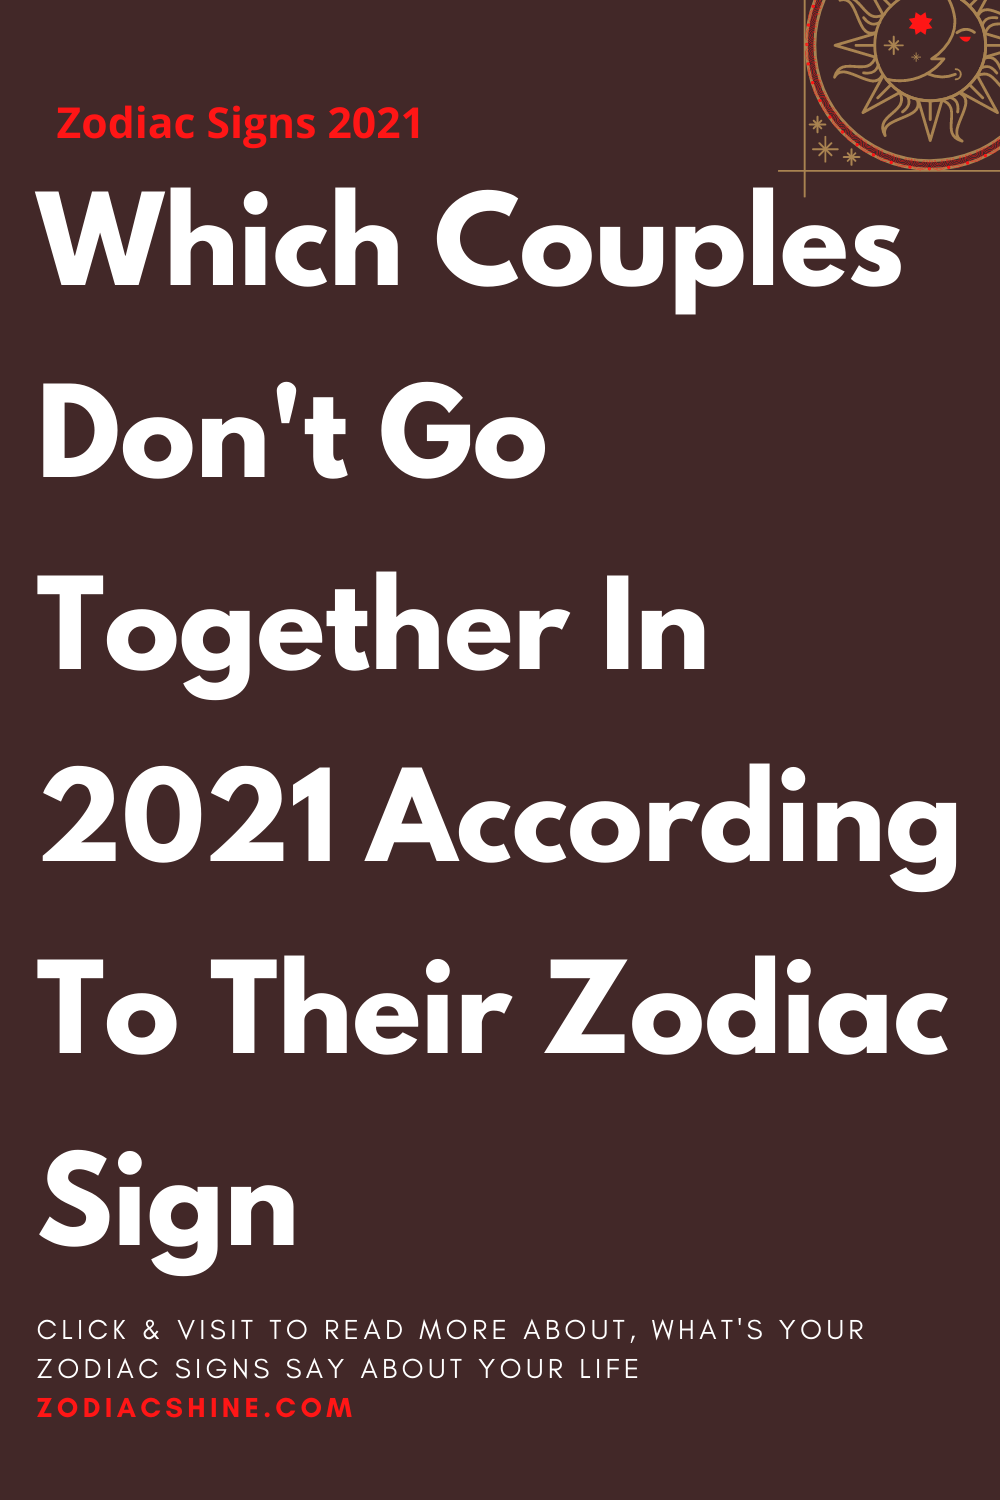 Which Couples Don't Go Together In 2021 According To Their Zodiac Sign